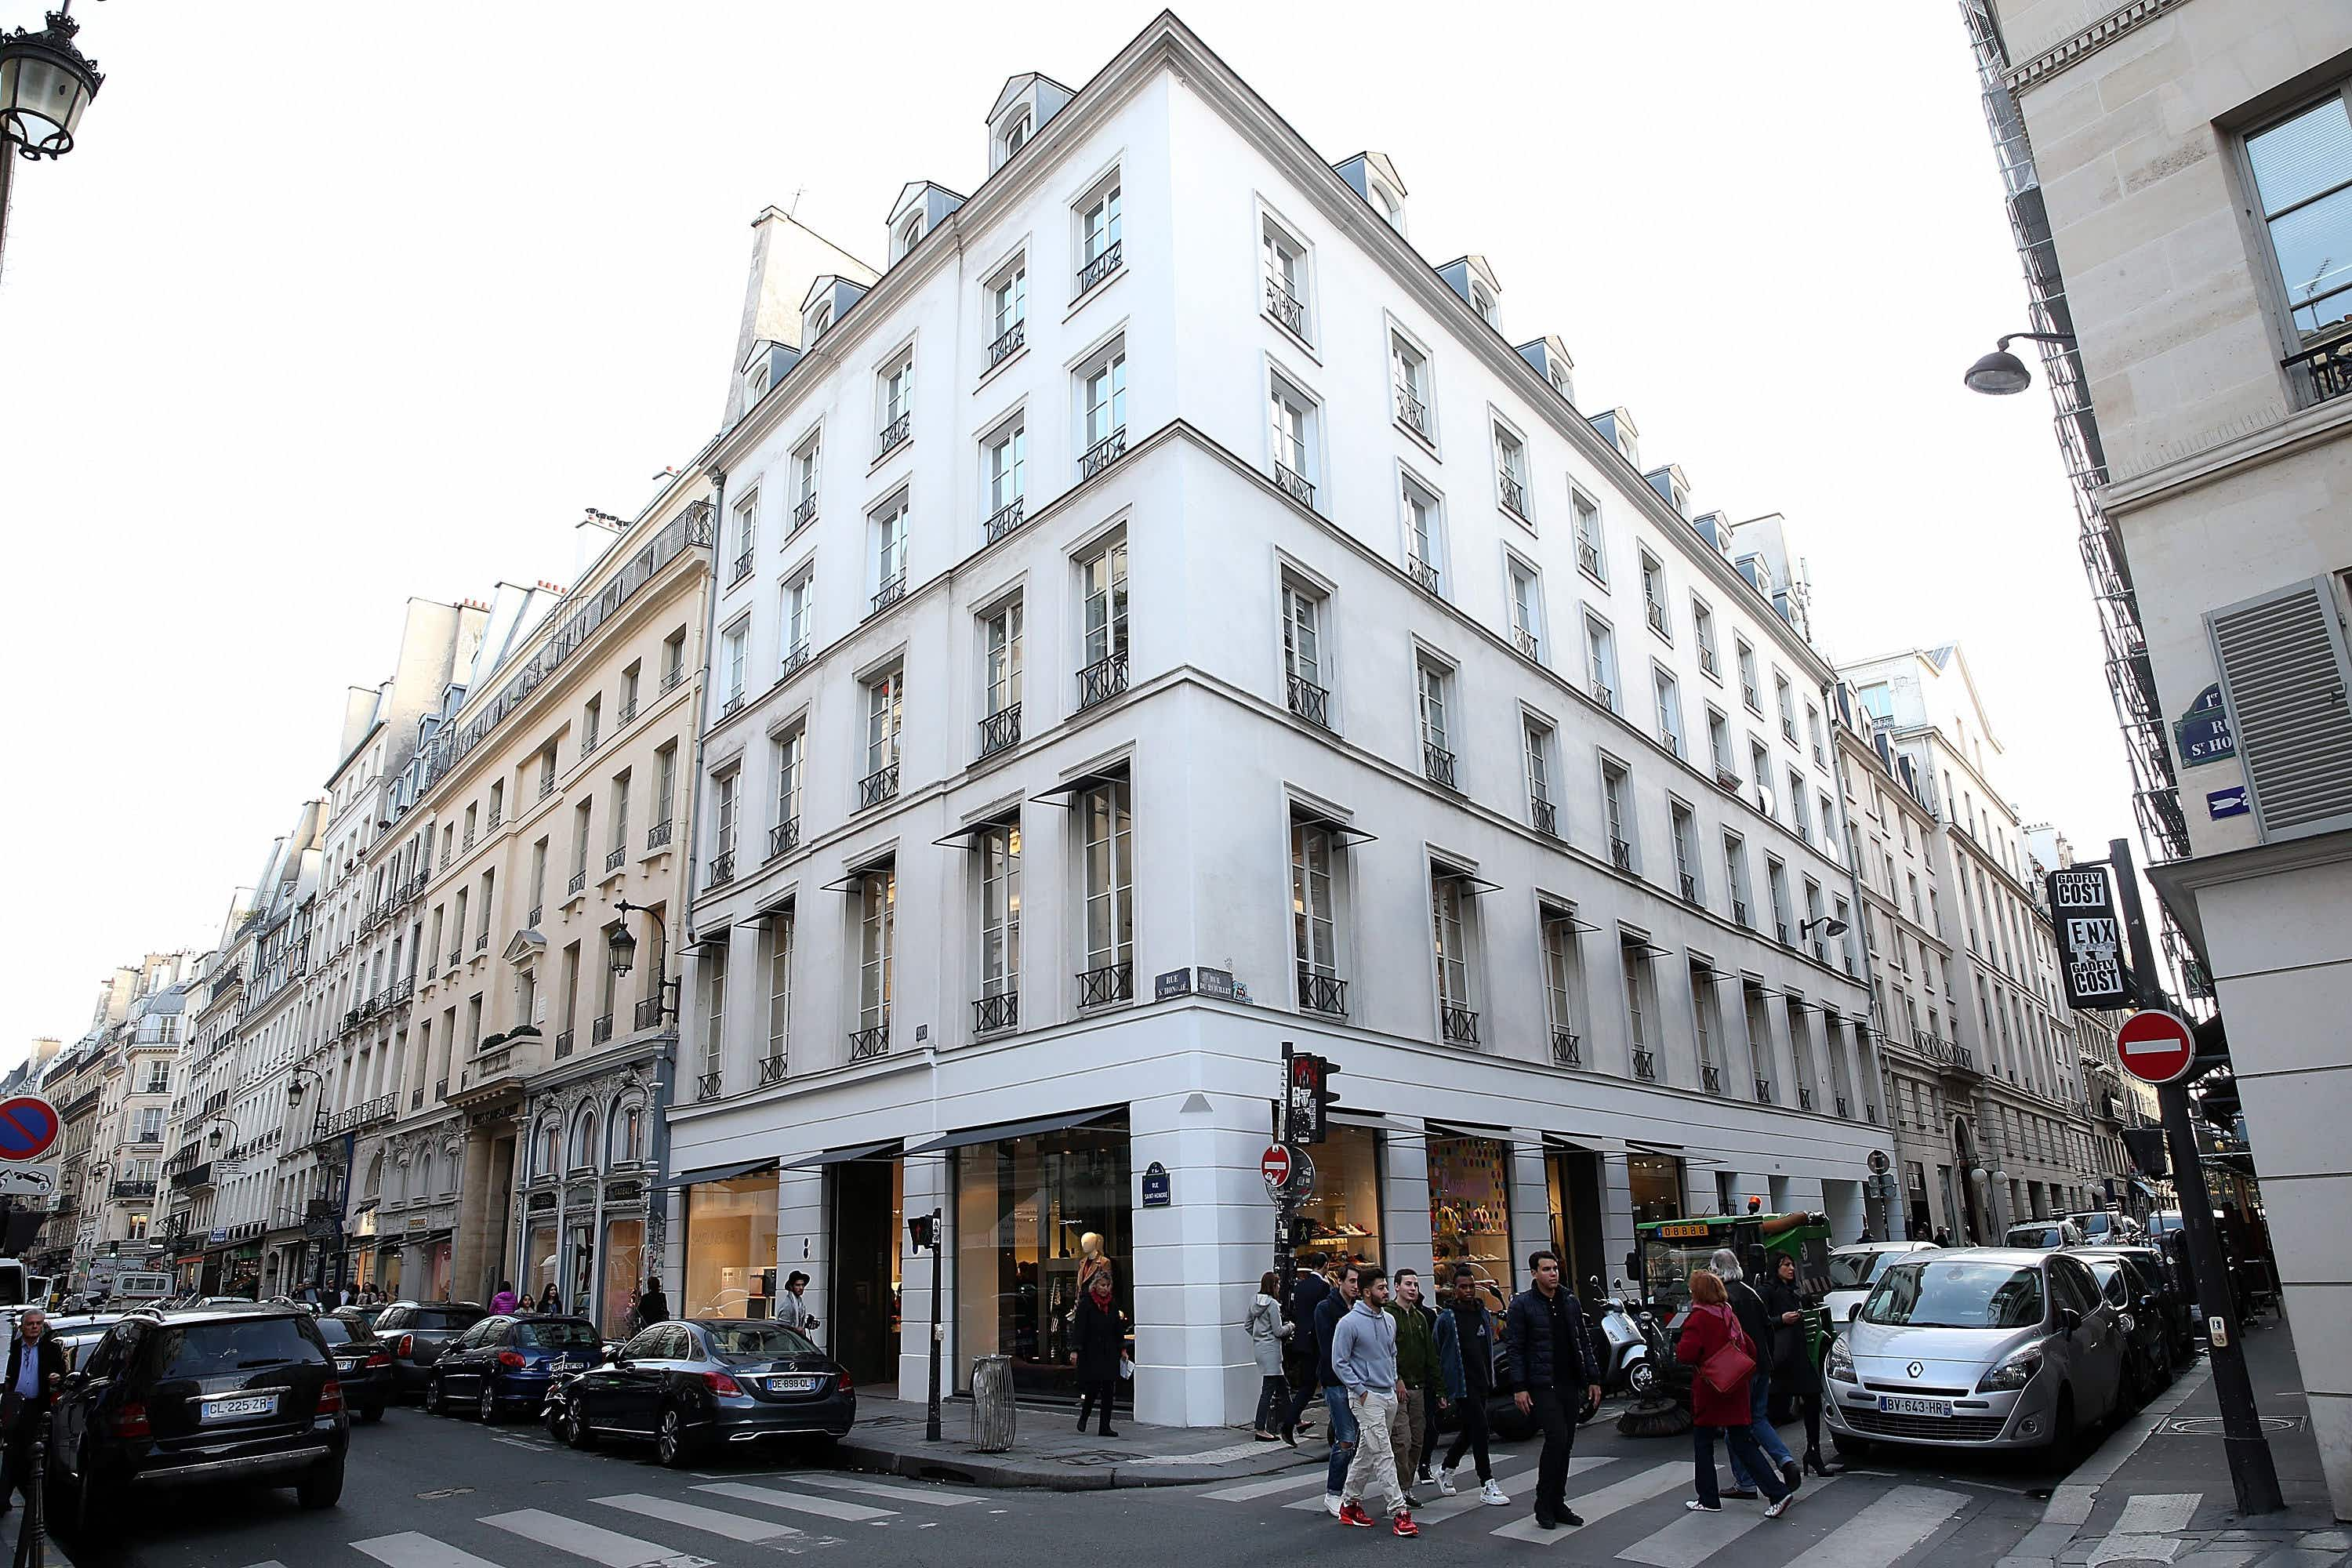 Visit this cult fashion hot spot in Paris before it closes its doors forever